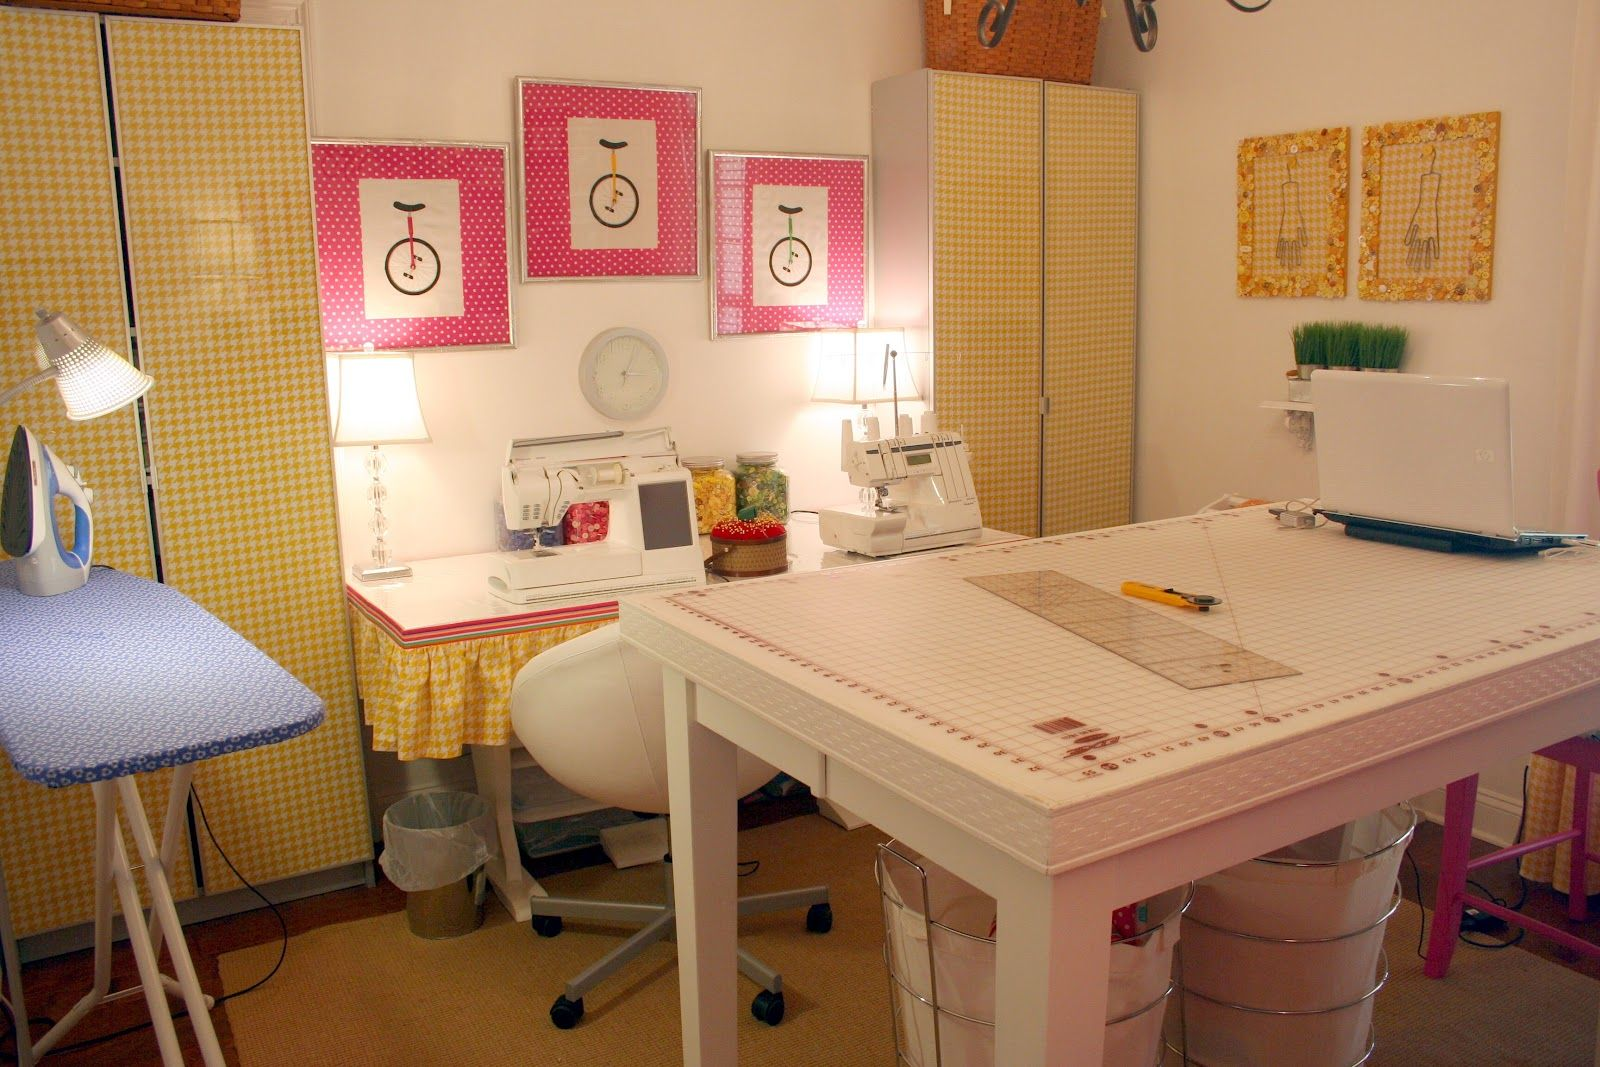 Fancy Sewing Room Decoration : Incredible Sewing Room Decorating Design  Ideas With Rectangular White Wood Sewing Table Including Blue Ironing Board